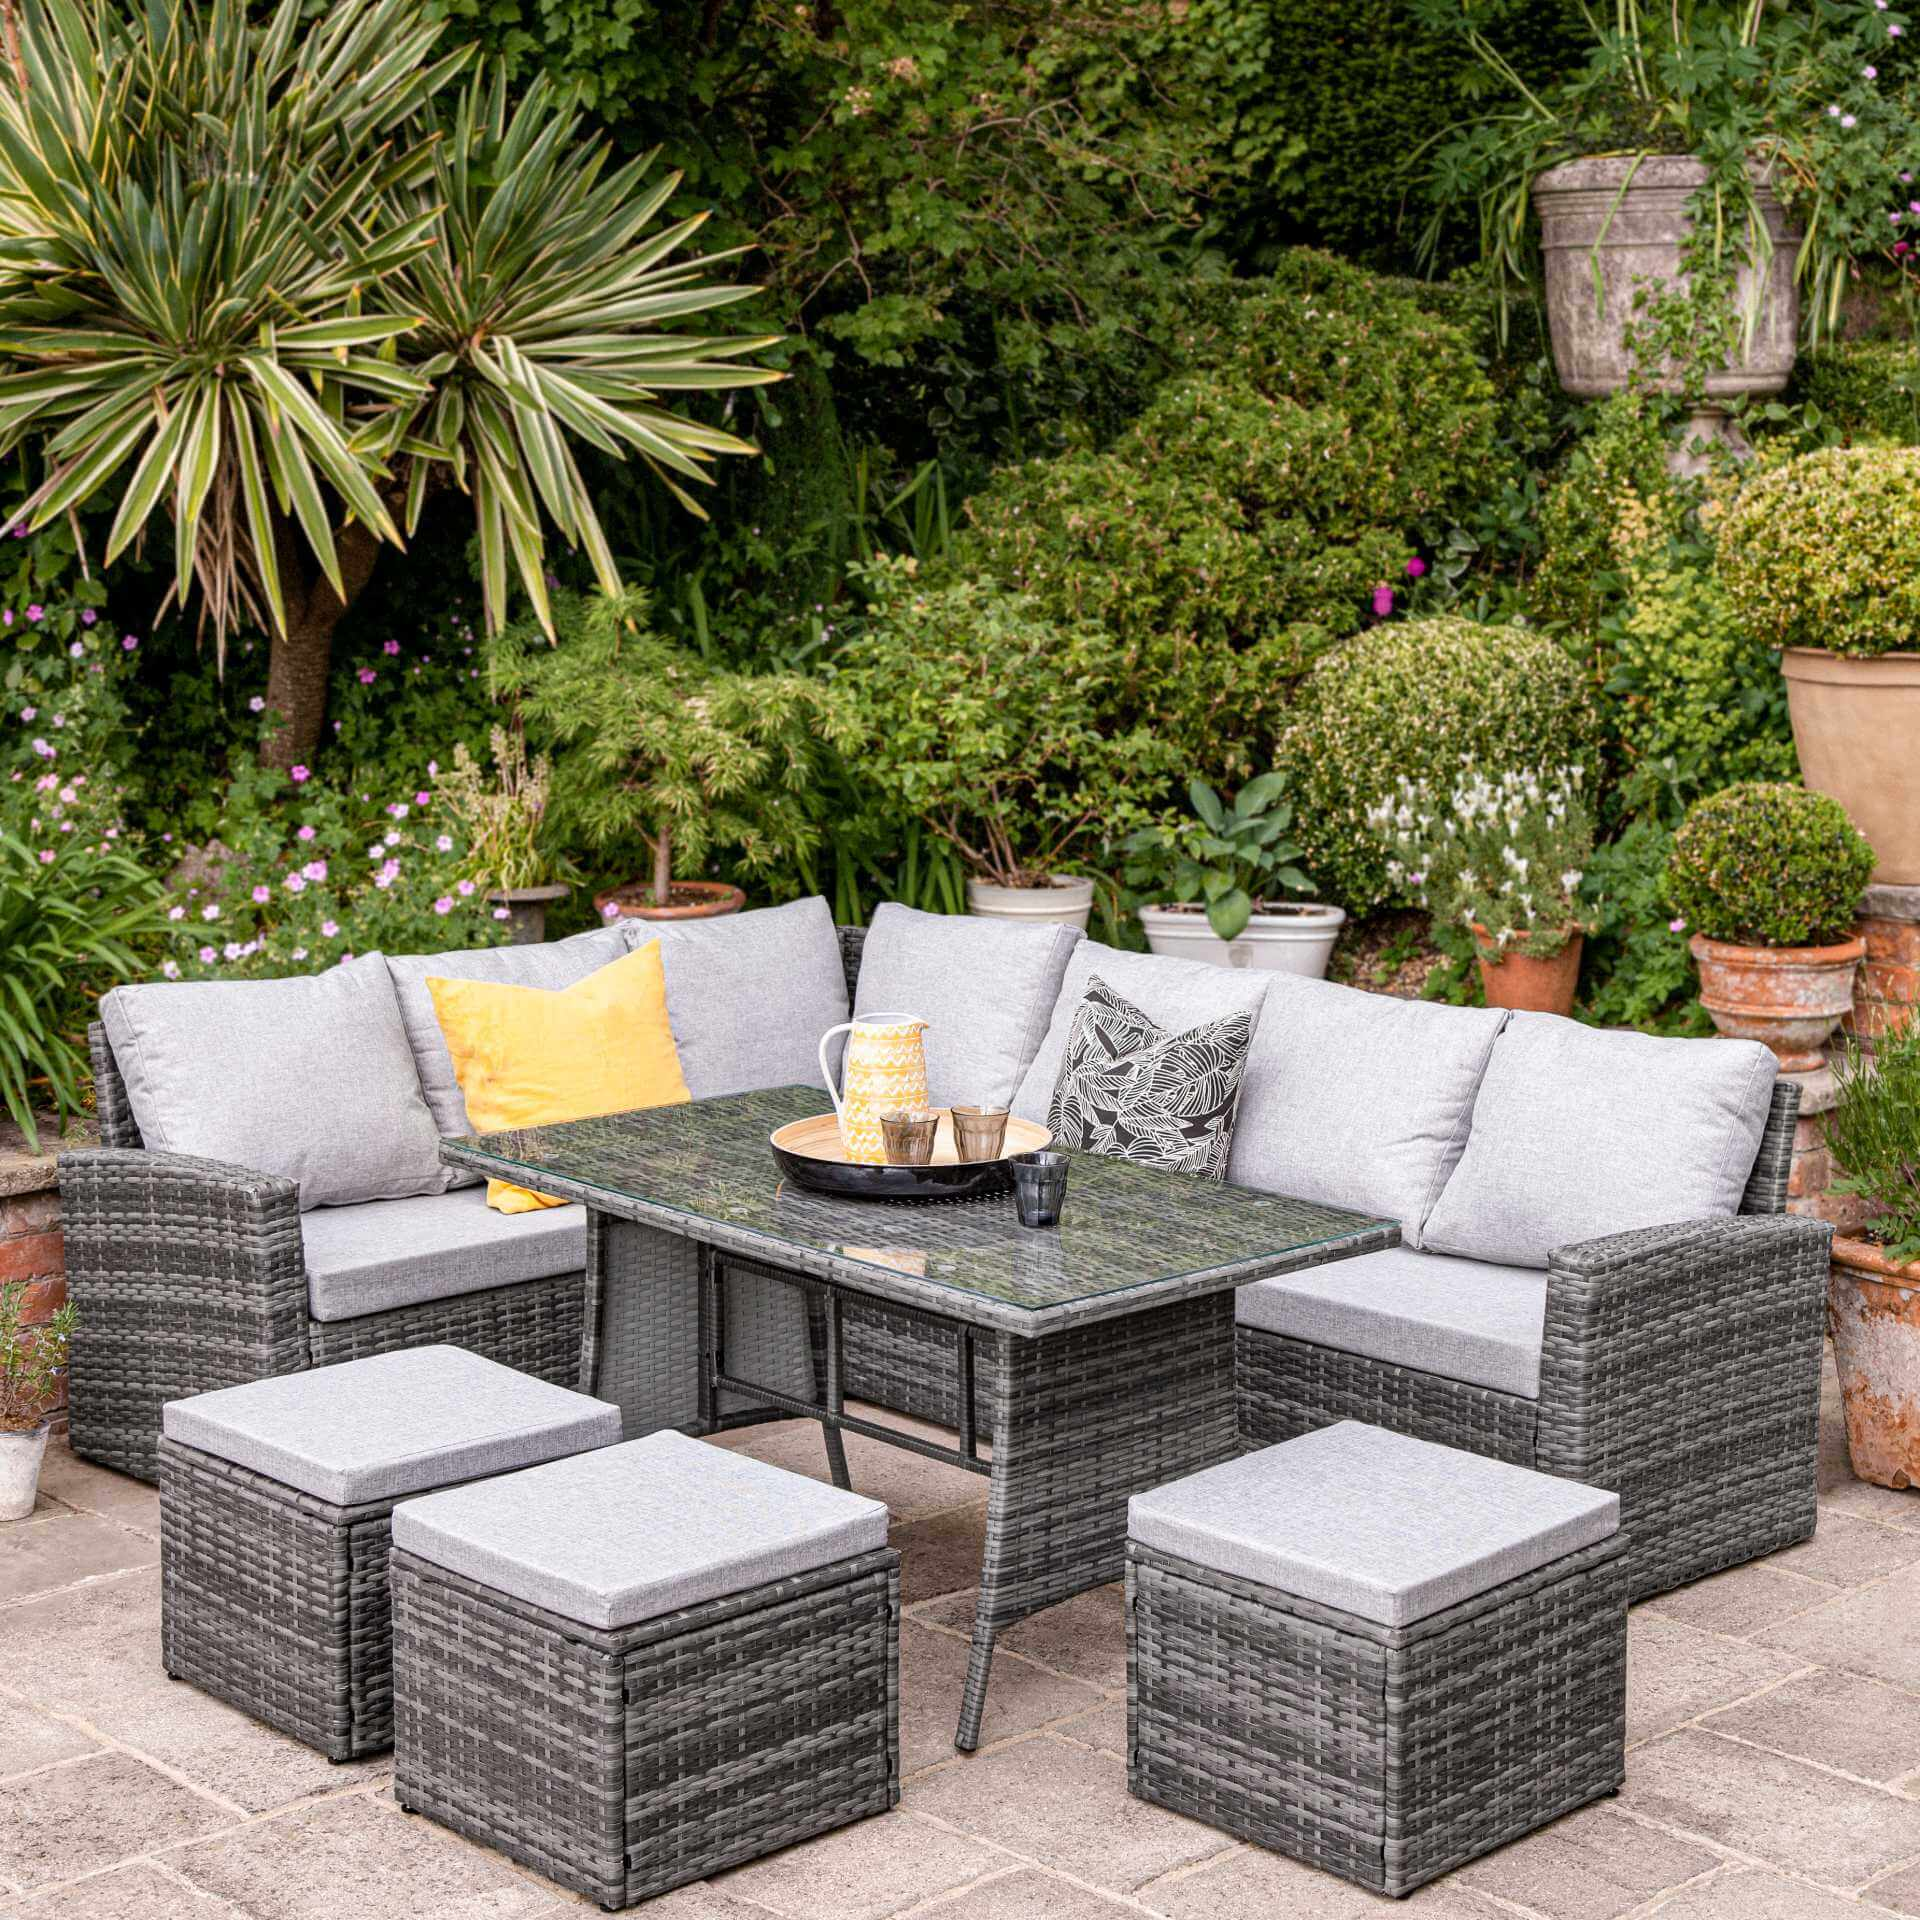 9 Seater Rattan Outdoor Corner Sofa Set - Grey Weave - Laura James